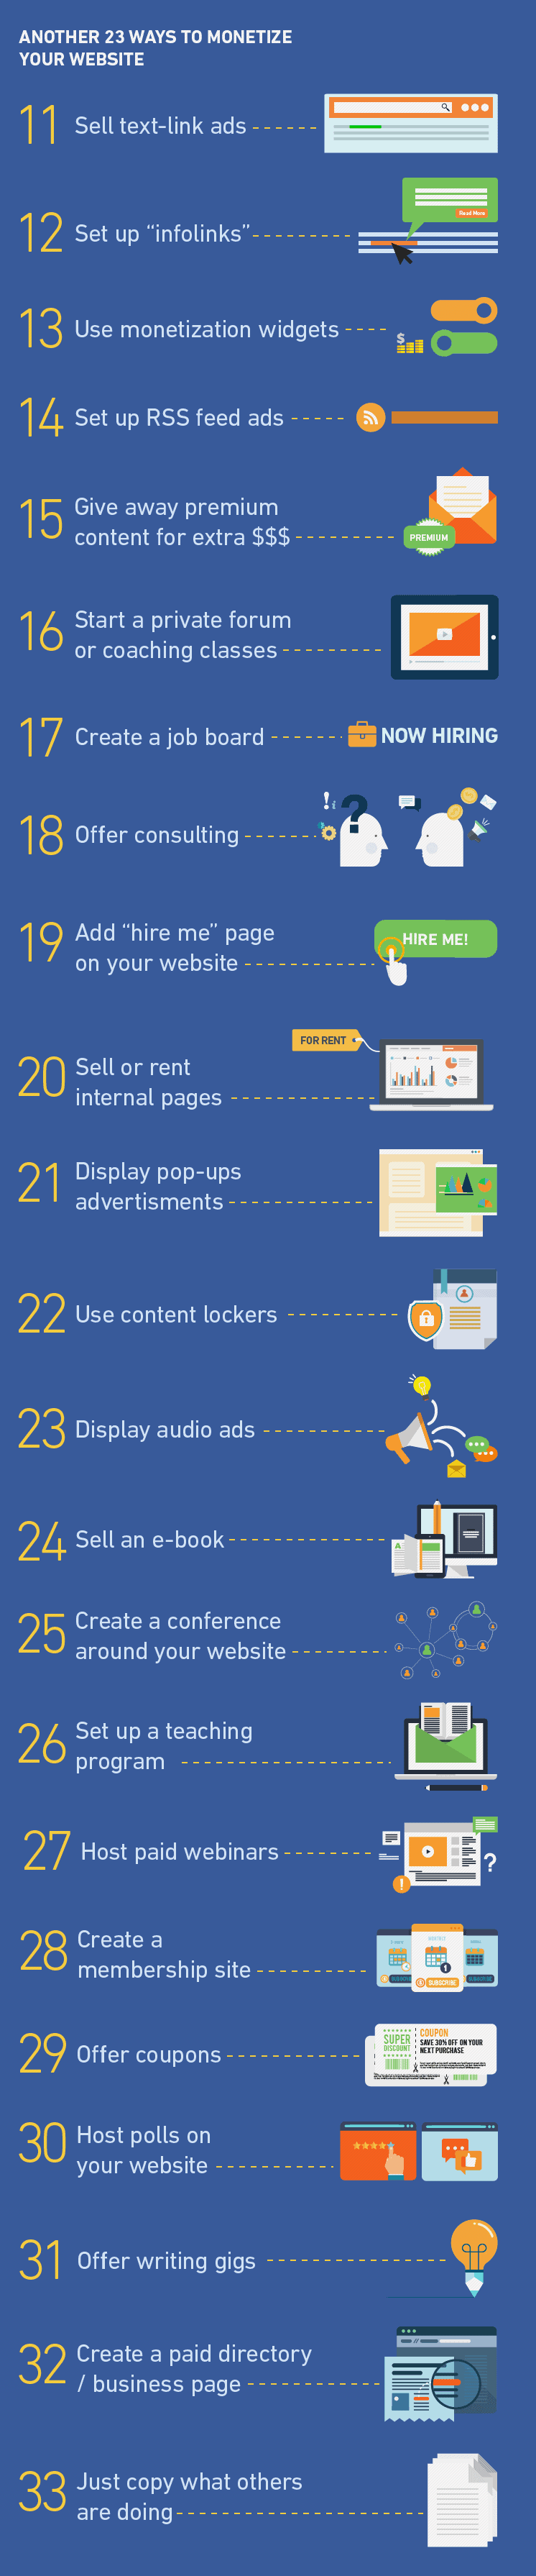 23-ways-to-make-money-with-your-website